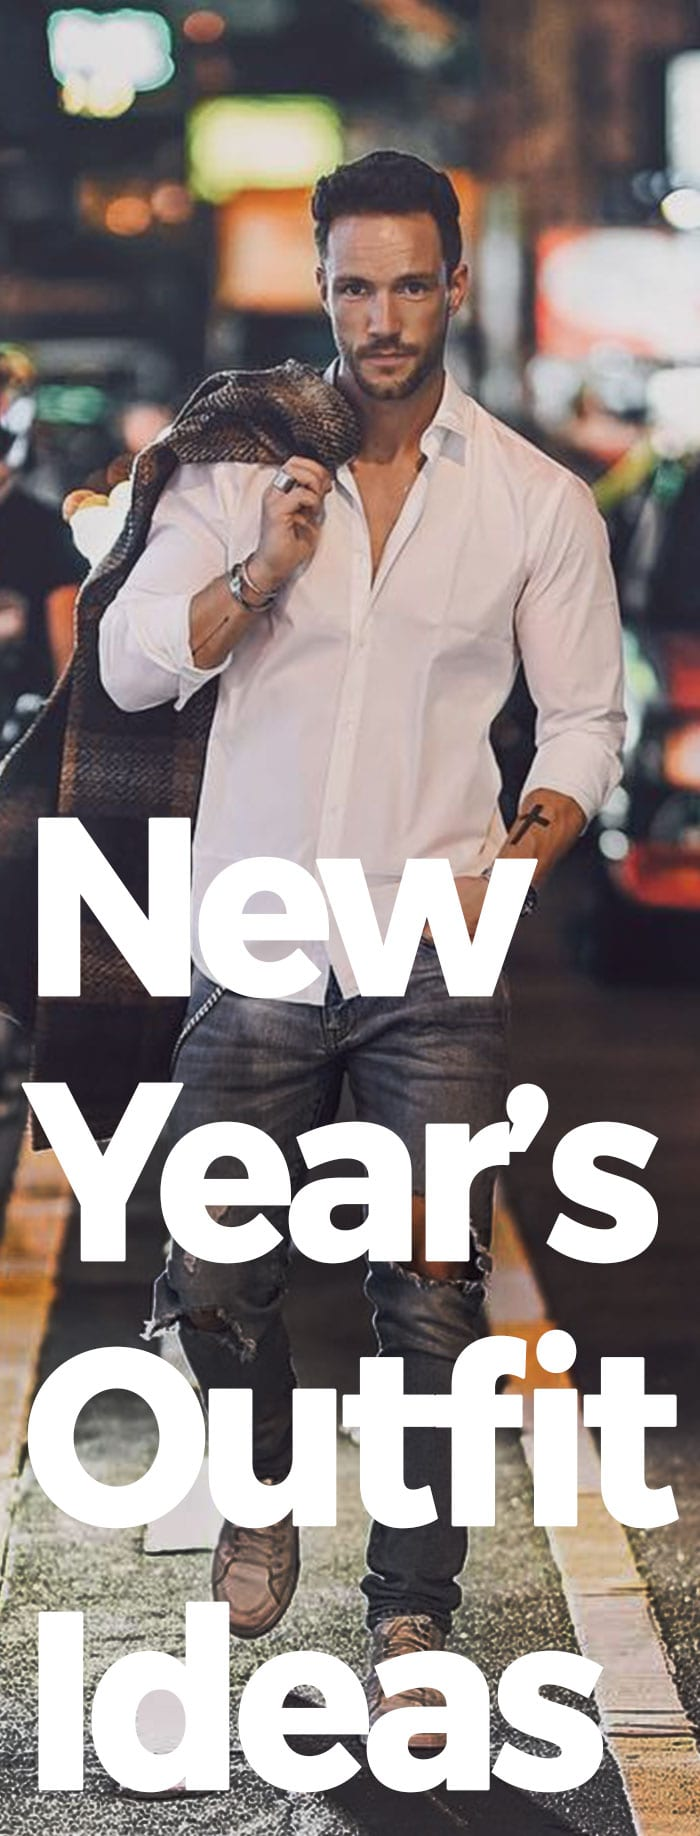 New Year's Outfit Ideas For Men